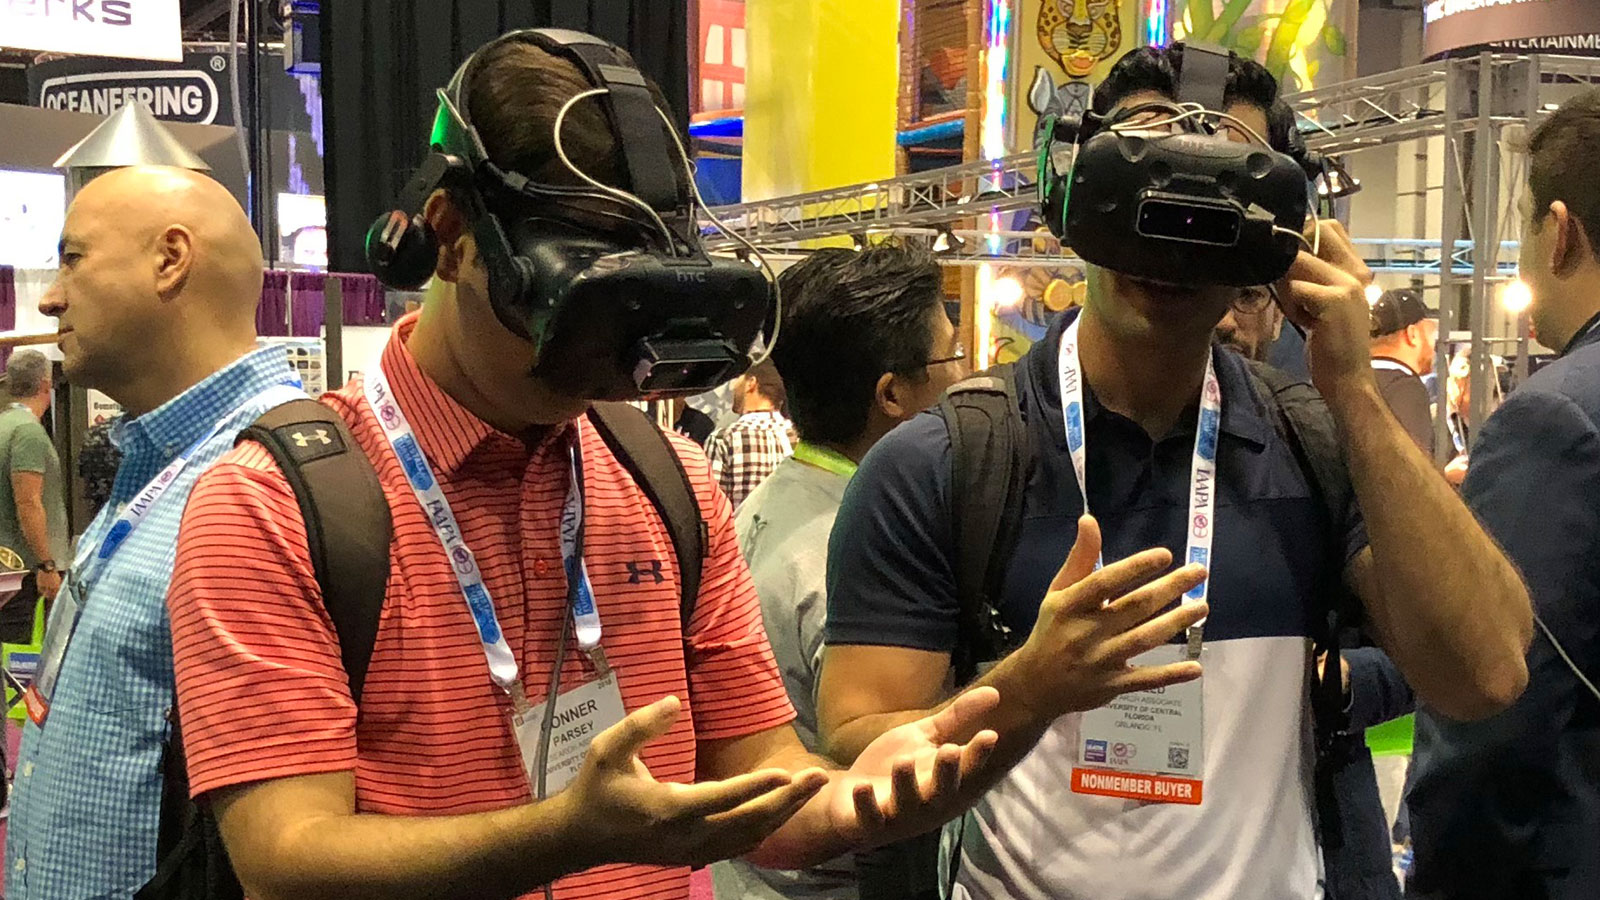 People at IAAPA experiencing Ultraleap technology